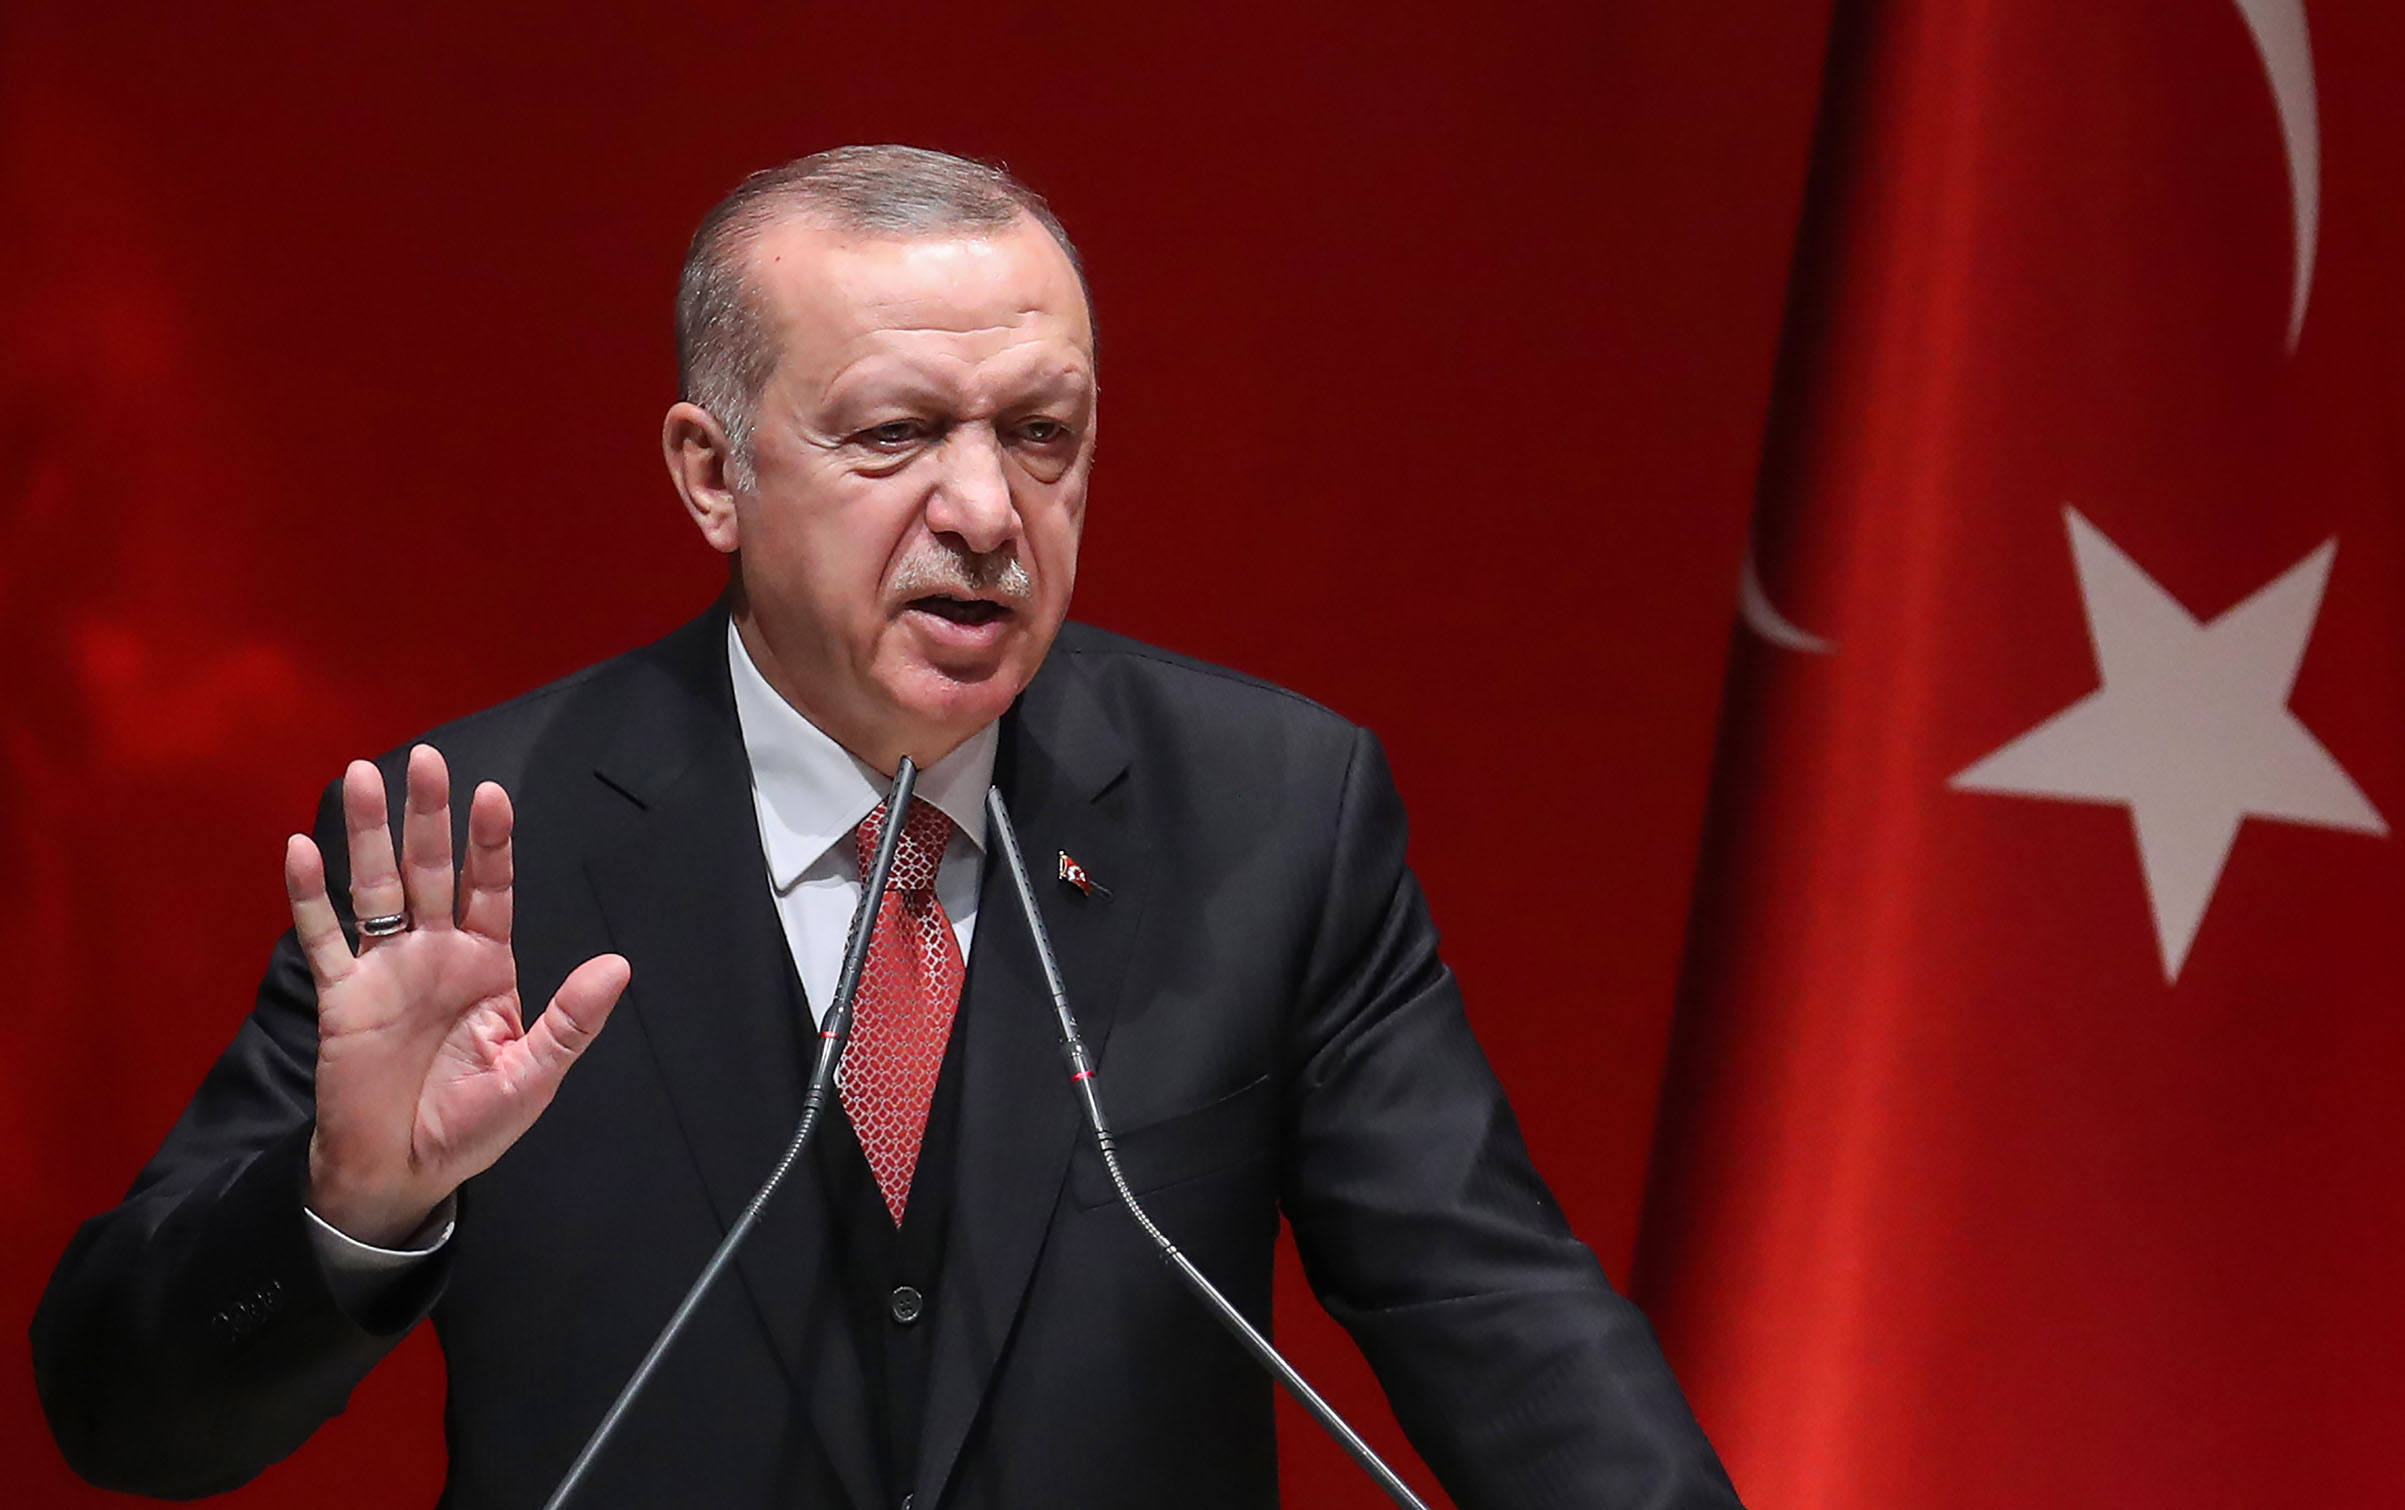 Erdogan Claims Turkey Now Wants Lasting Ceasefire In Idlib